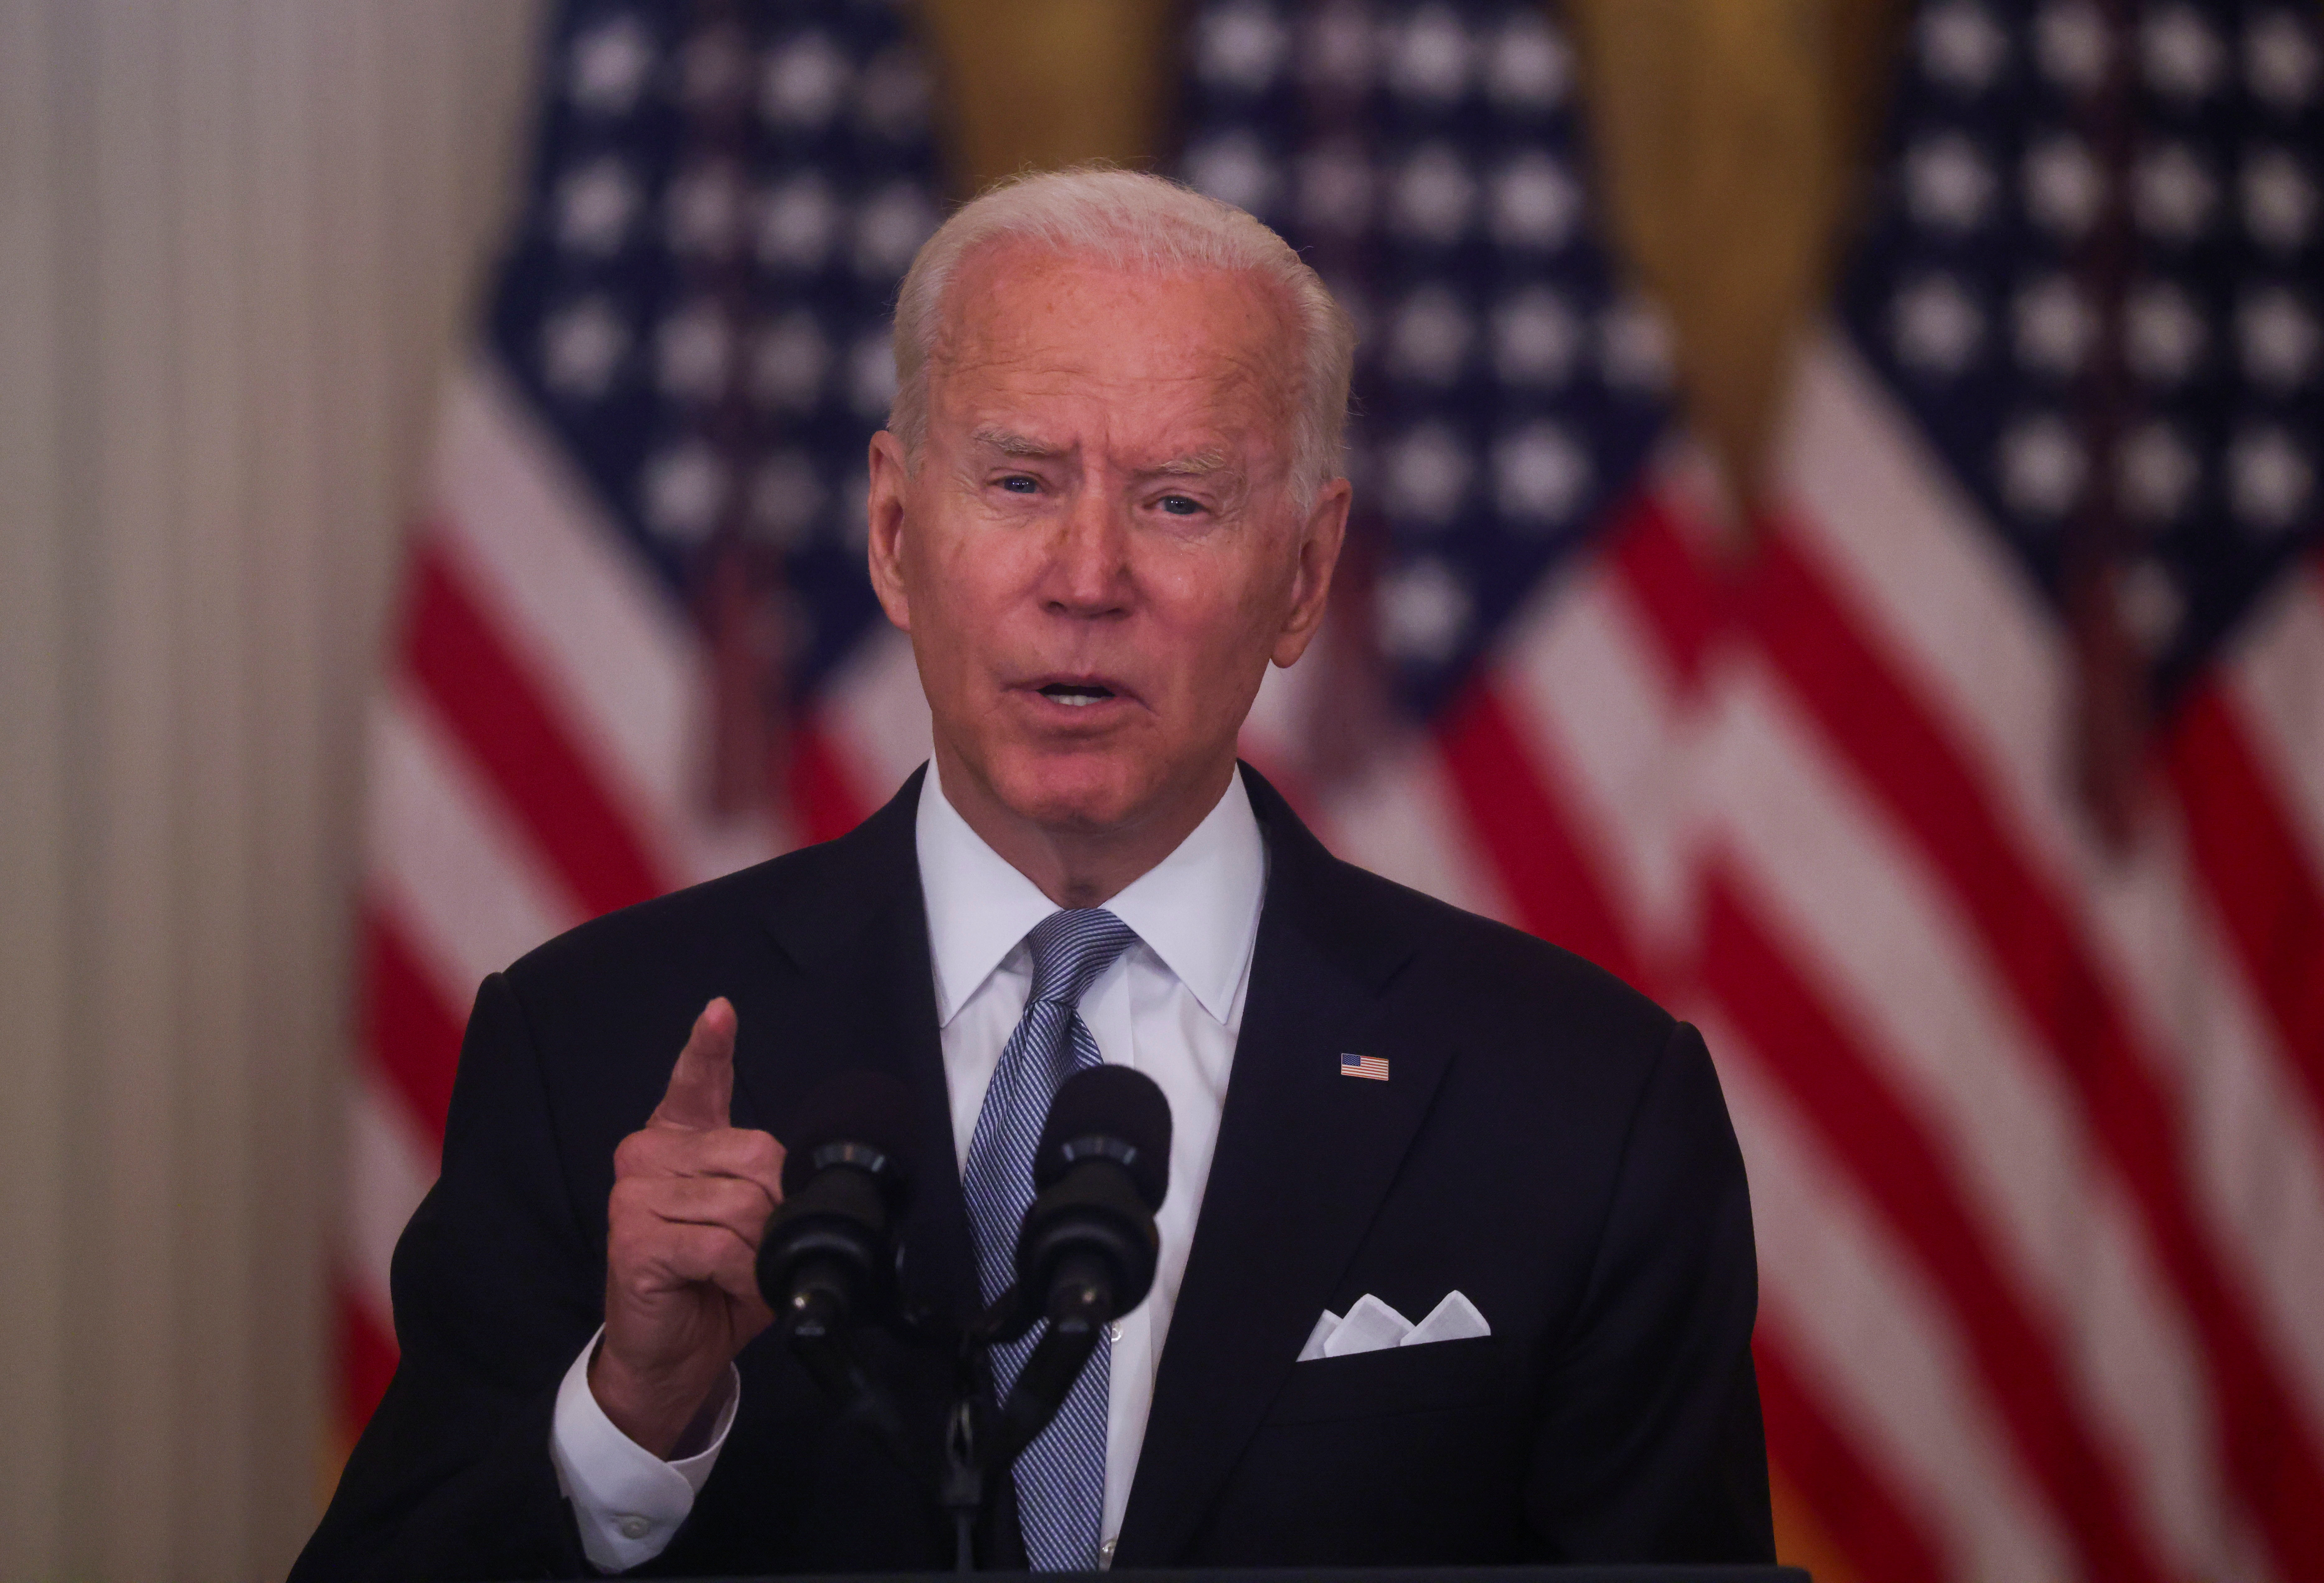 U.S. President Joe Biden delivers remarks on the crisis in Afghanistan during a speech in the East Room at the White House in Washington, U.S., August 16, 2021. REUTERS/Leah Millis